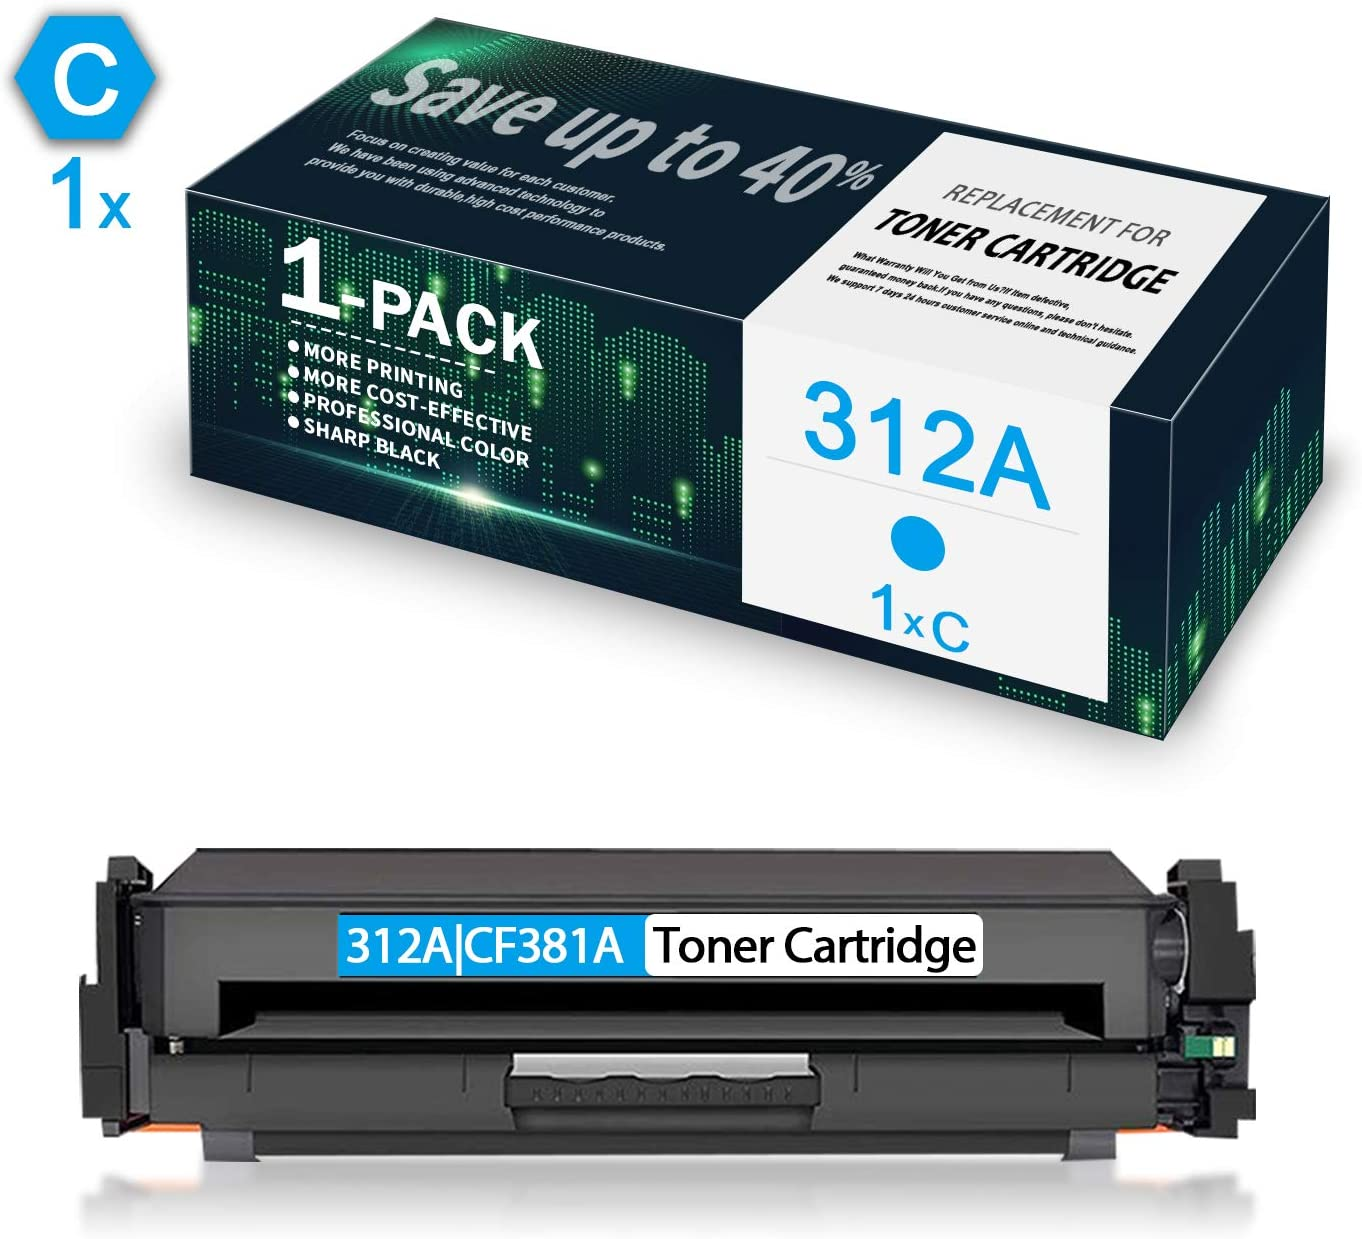 2 Pack 312A CF381A Cyan Remanufactured Toner Cartridge Replacement for HP Color Laserjet Pro MFP M476dw MFP M476dn,MFP M476nw Printers,by CuToner.